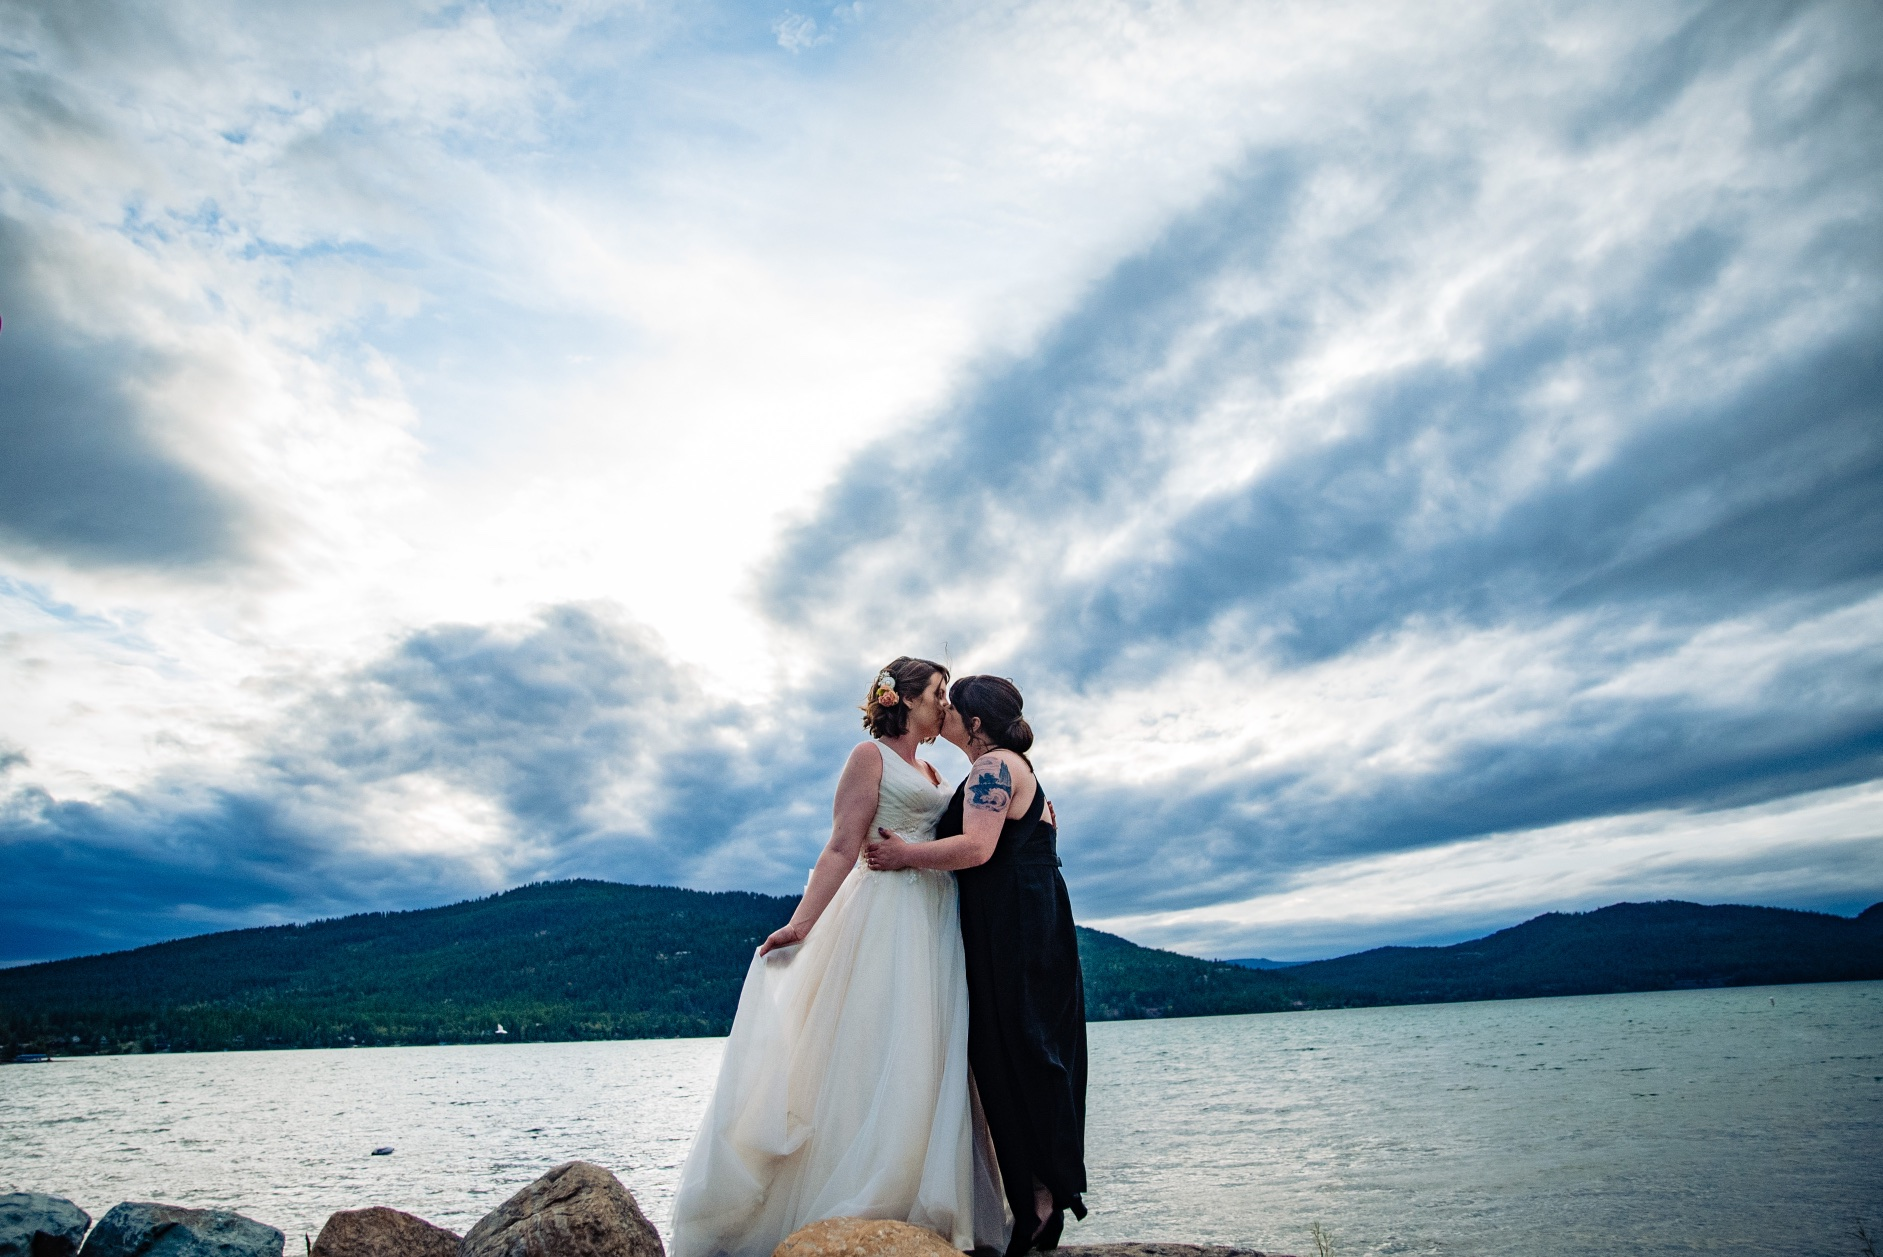 lindseyjanephoto_wedding0135.jpg